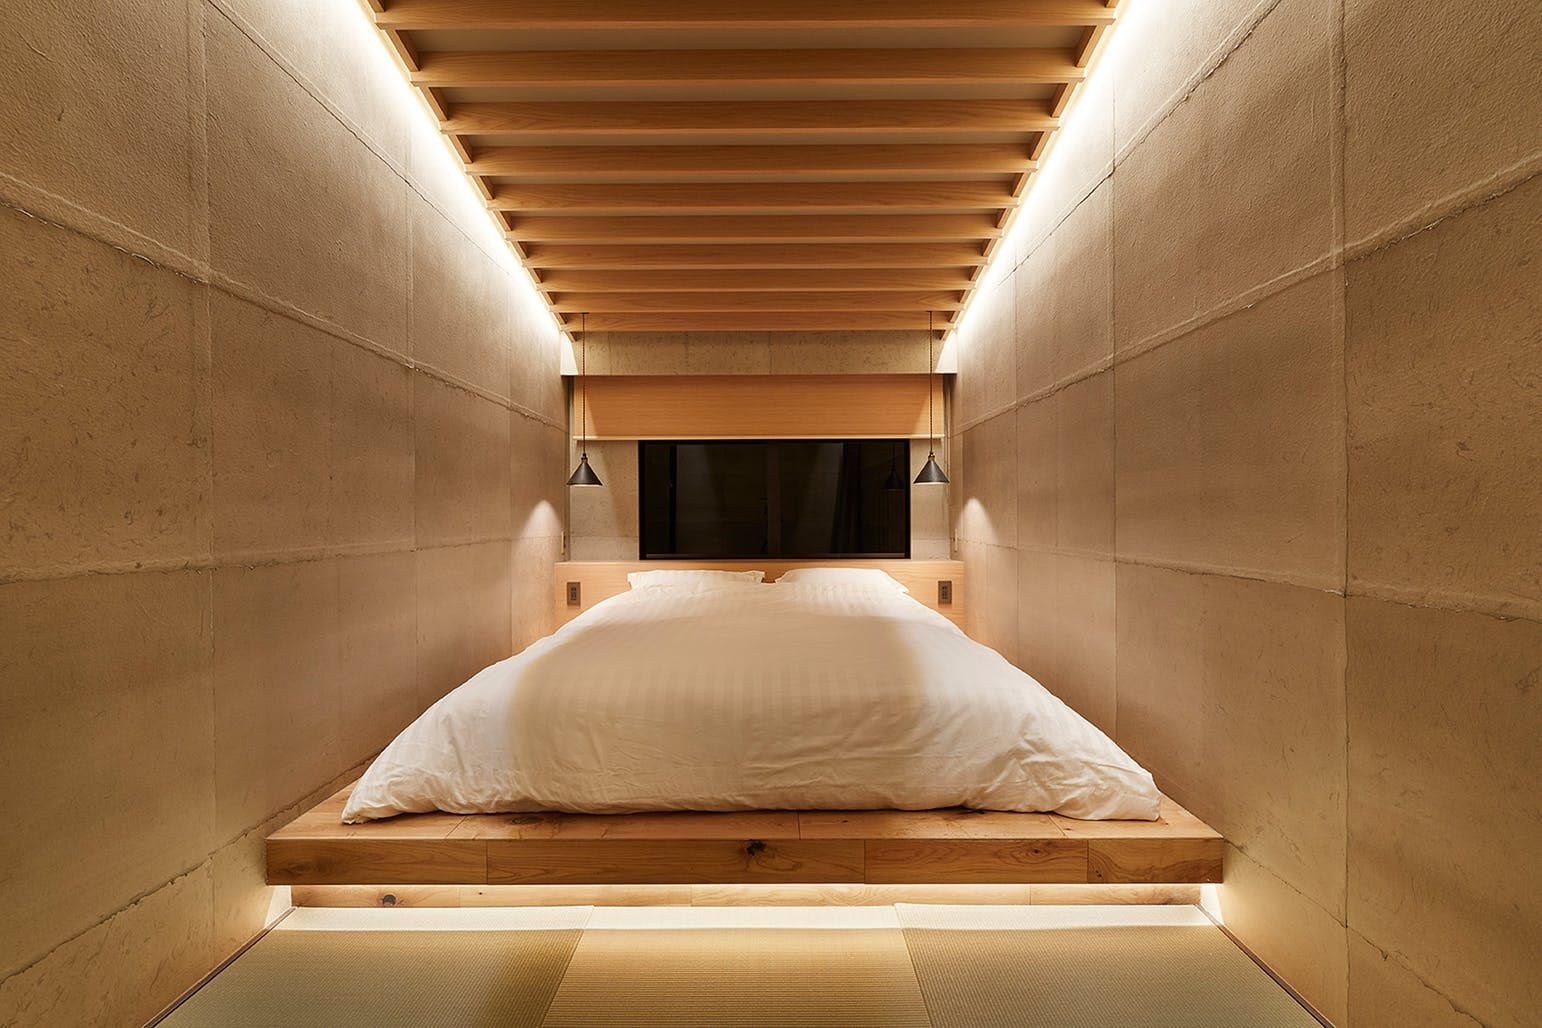 Blending Japanese Traditional And Modern Architecture This Kyoto Guest House Is A Quiet Stunner Guest House House Architecture Design